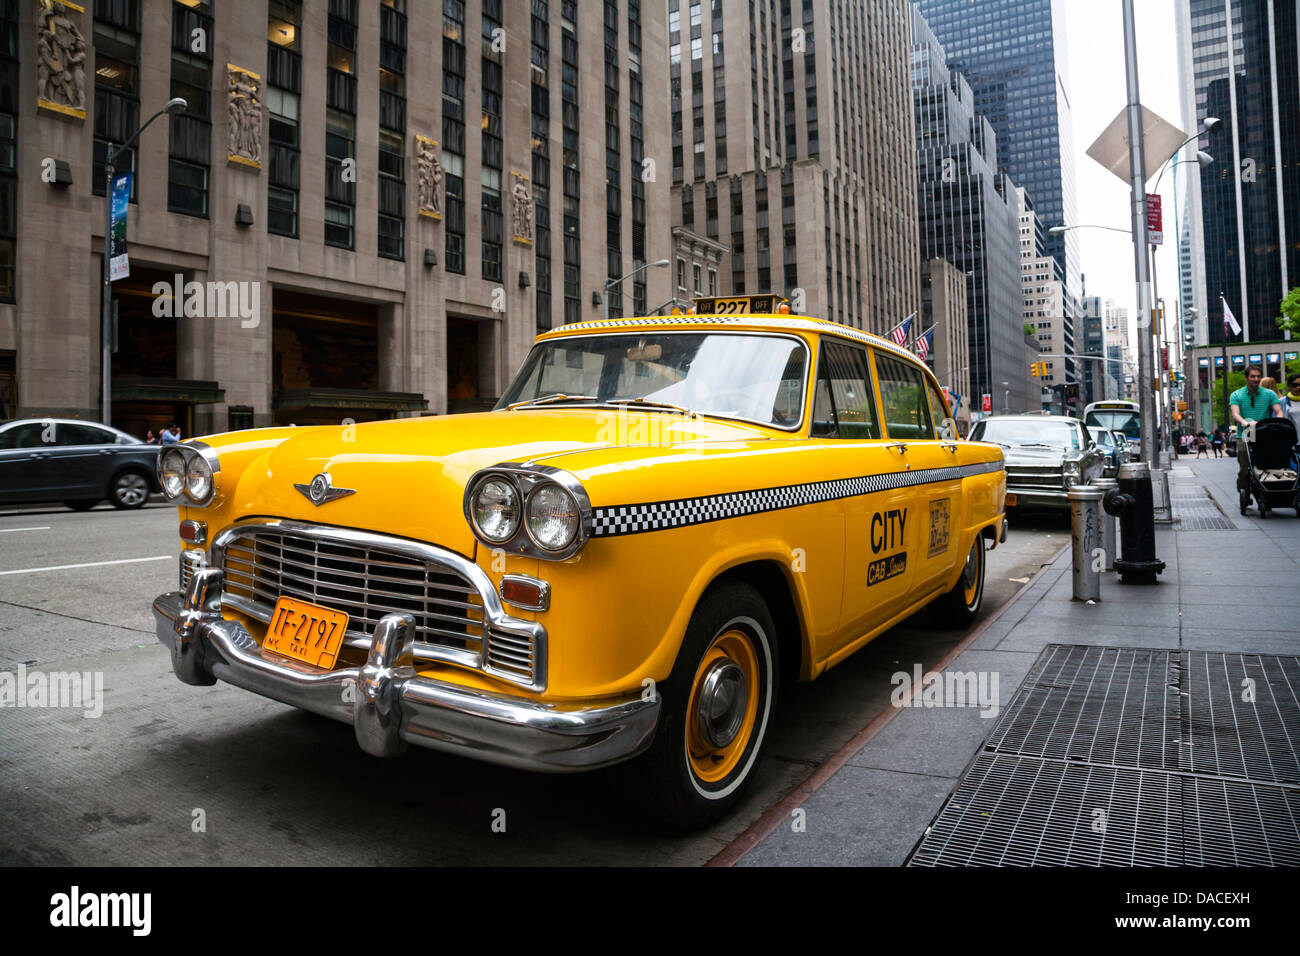 vintage yellow new york taxi nyc usa stock photo 58052809 alamy. Black Bedroom Furniture Sets. Home Design Ideas